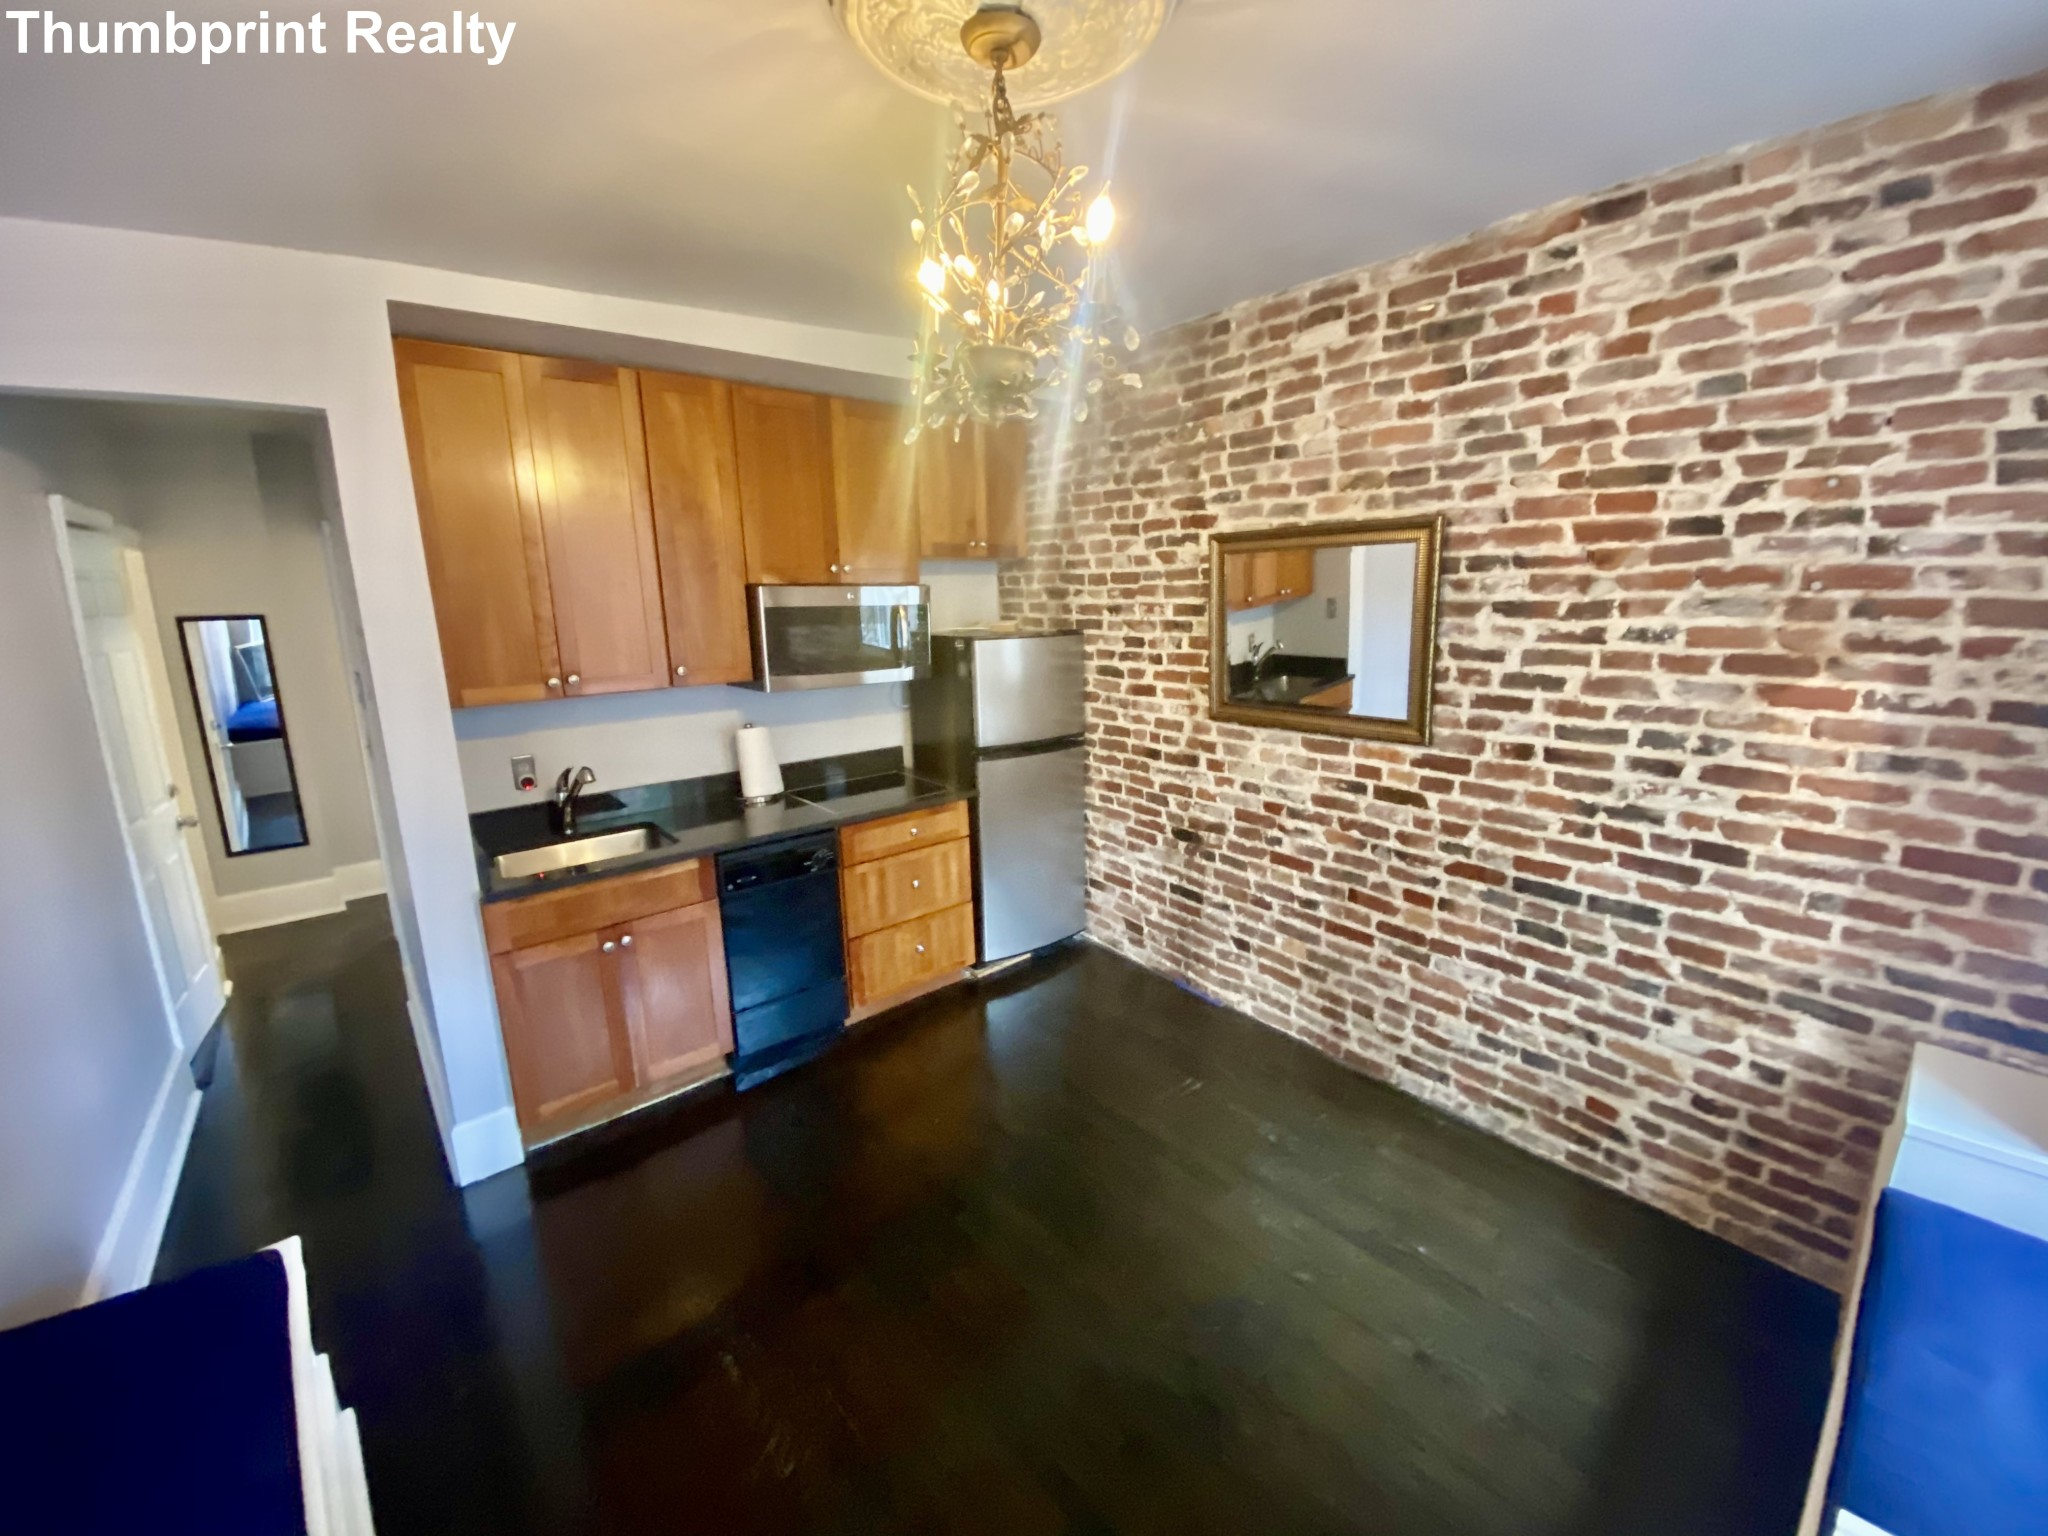 2 Beds, 1 Bath apartment in Boston, Beacon Hill for $2,200